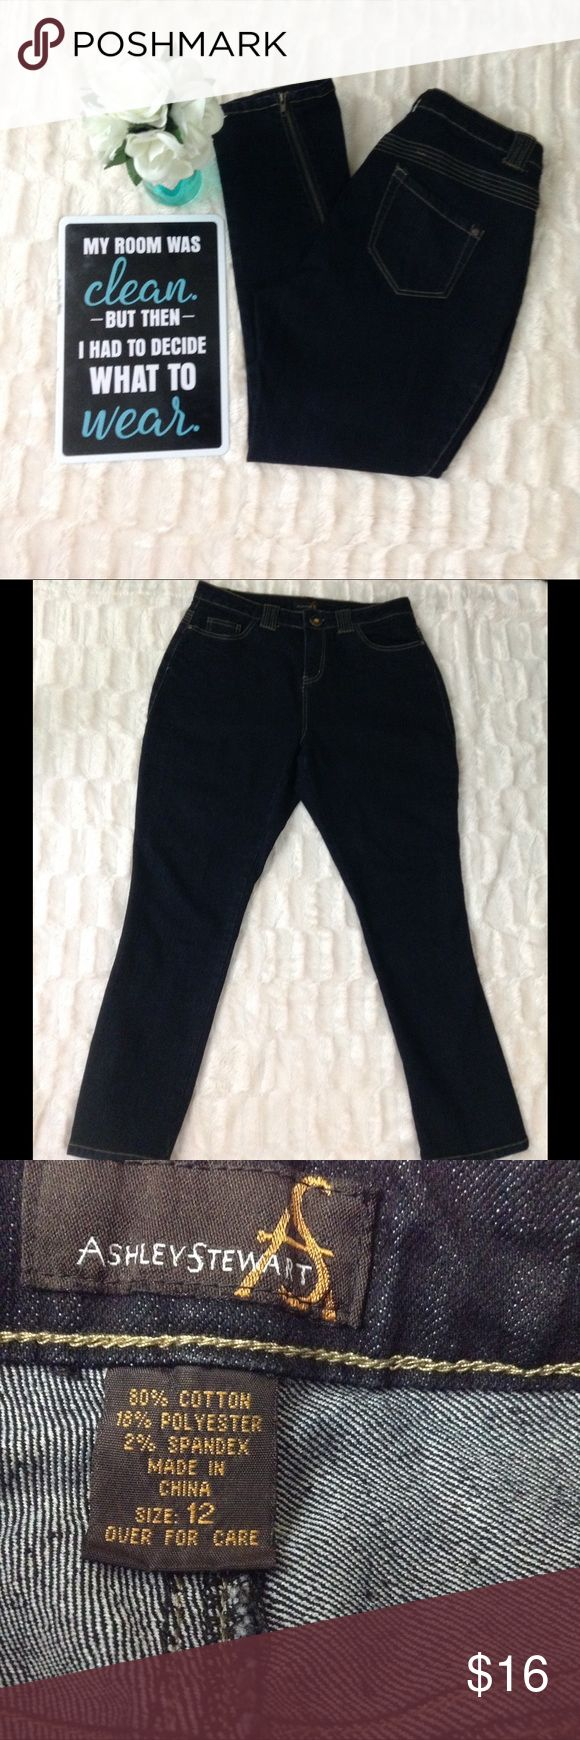 """Ashley Stewart cropped jeans with zipper size 14 Ashley Stewart womens cropped jeans with zipper  Size 14 Inseam 28"""" Dark wash with tan stitching Has zippers on the bottom calf area """"see pic"""" Pre owned  Excellent used condition Ashley Stewart Jeans Ankle & Cropped"""